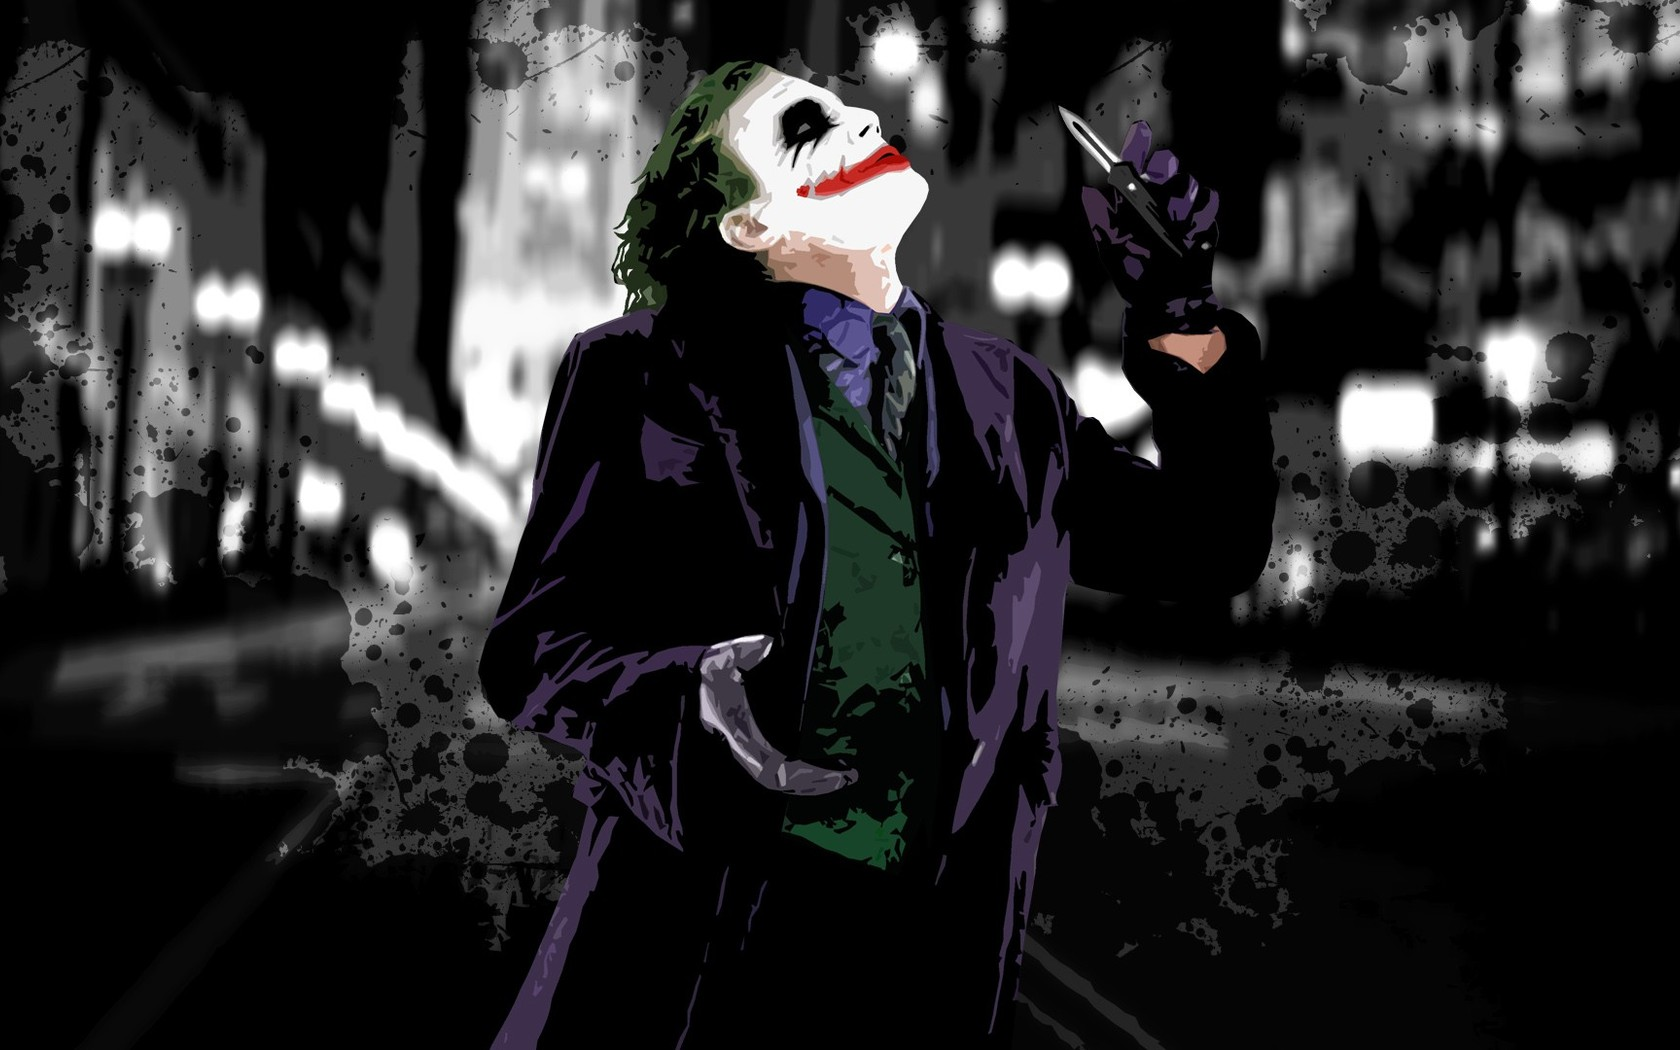 The Joker   The Dark Knight wallpaper 4992 1680x1050